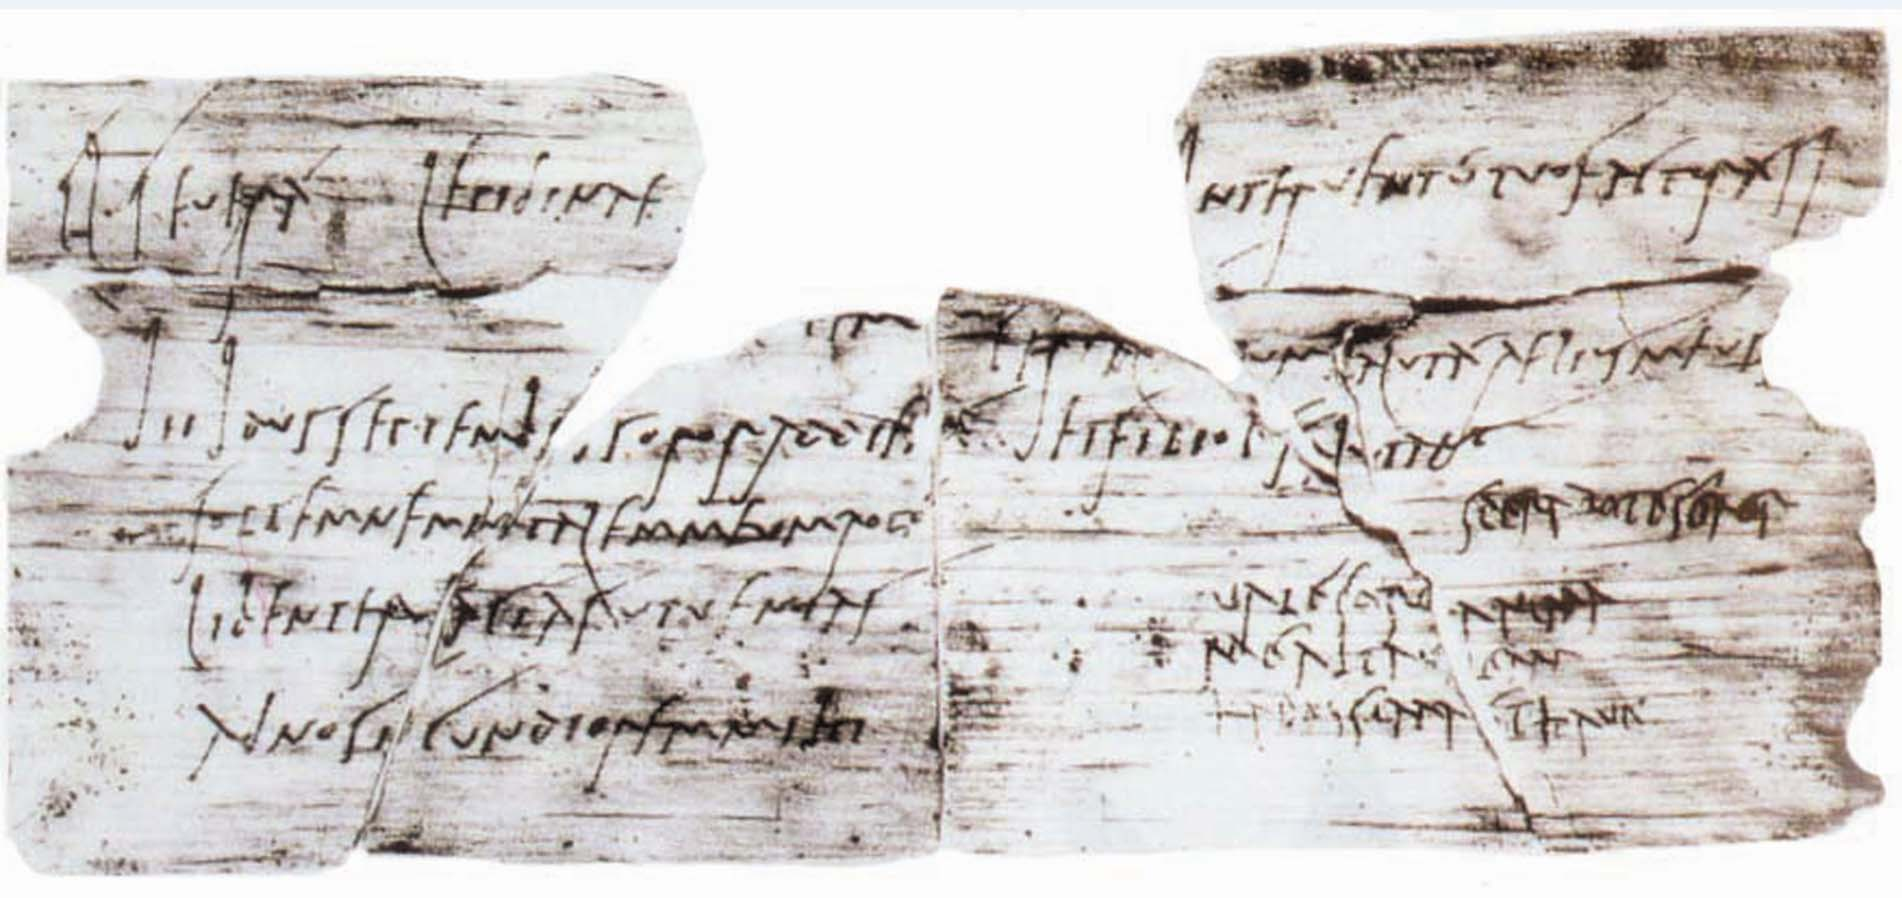 a scan of latter with fragments of Latin on it